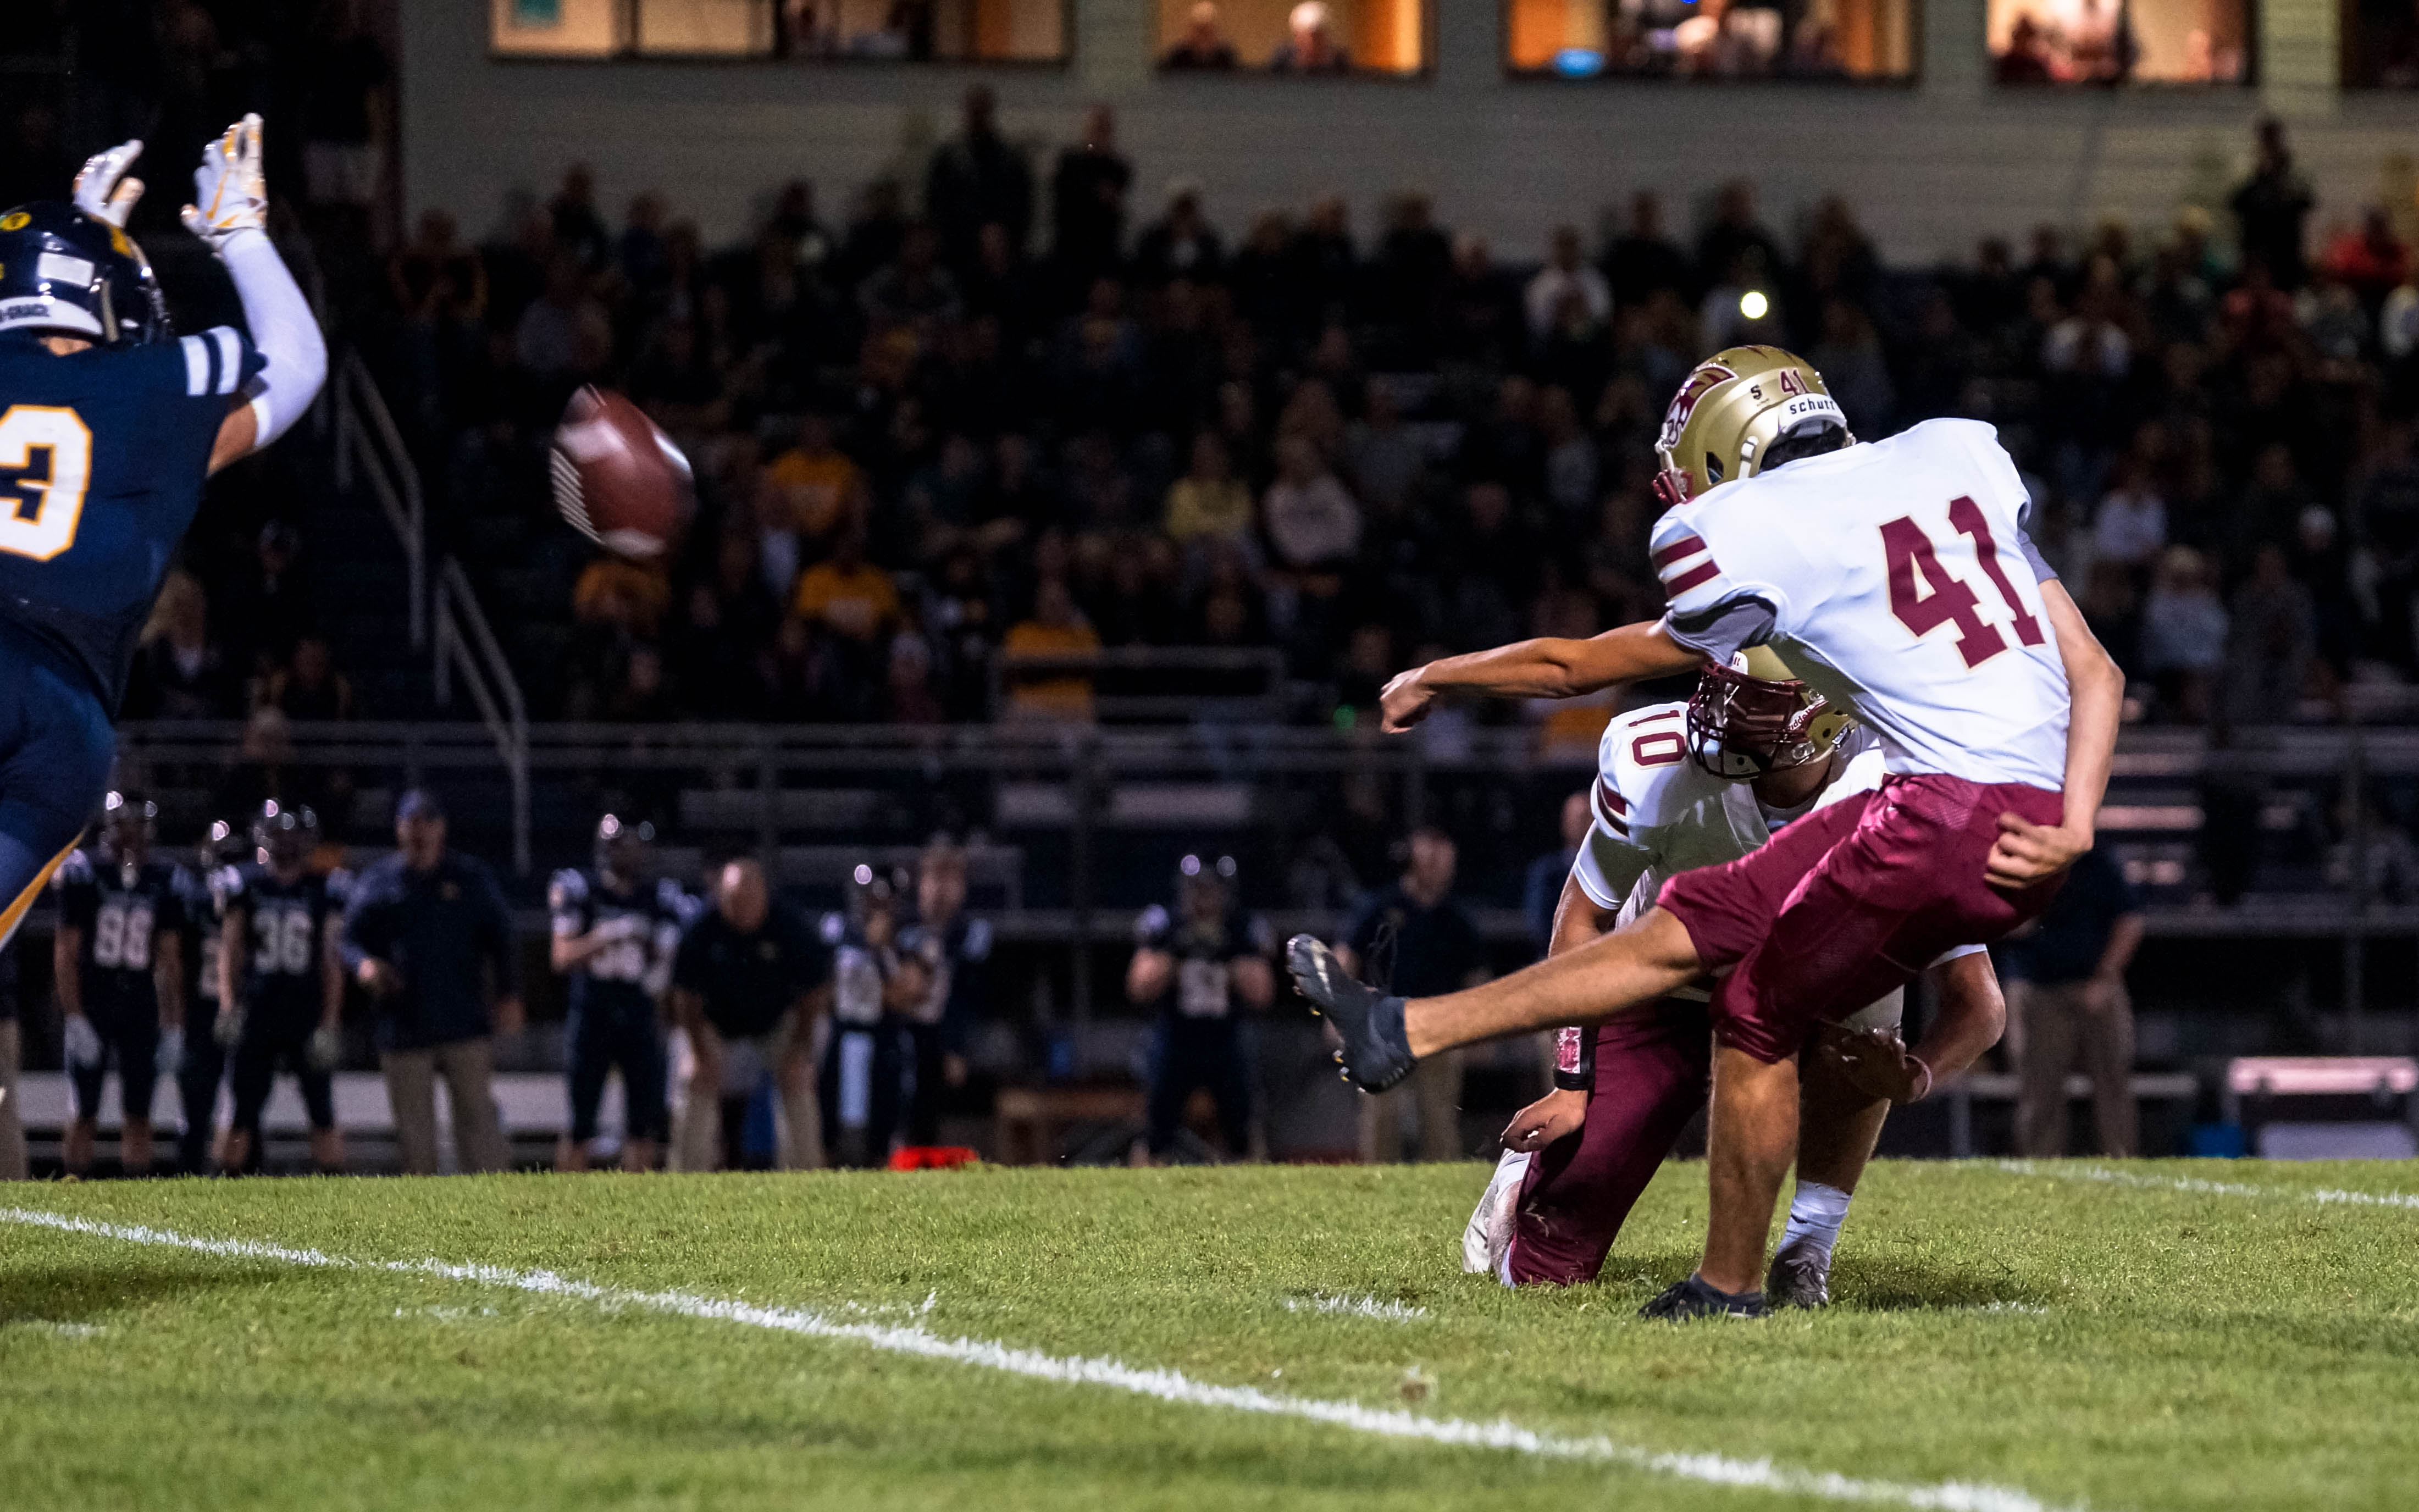 Lakeville South kicker John Olson (41) with the game-winning kick with just 13.5 seconds left to play against Totino-Grace on Thursday night. The Cougars beat the Eagles 13-10. Photo by Korey McDermott, SportsEngine